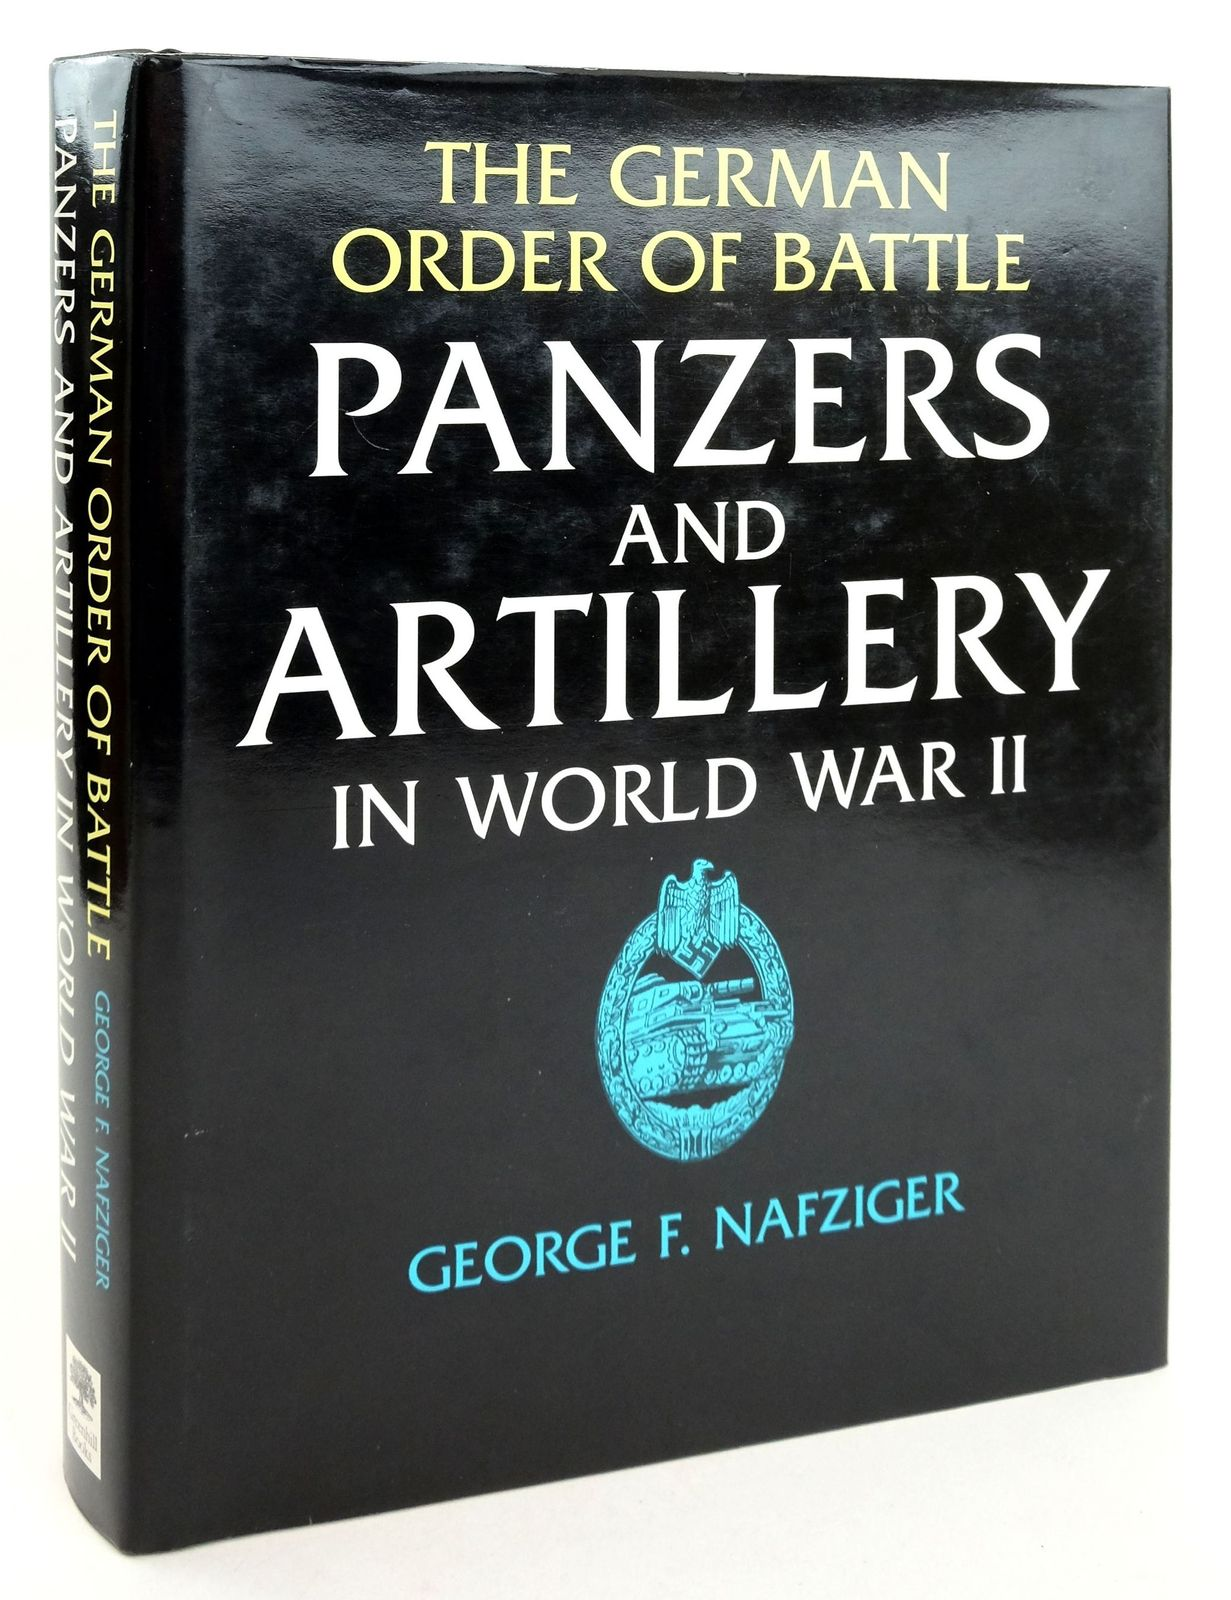 Photo of THE GERMAN ORDER OF BATTLE PANZERS AND ARTILLERY IN WORLD WAR II written by Nafziger, George published by Greenhill Books (STOCK CODE: 1819339)  for sale by Stella & Rose's Books